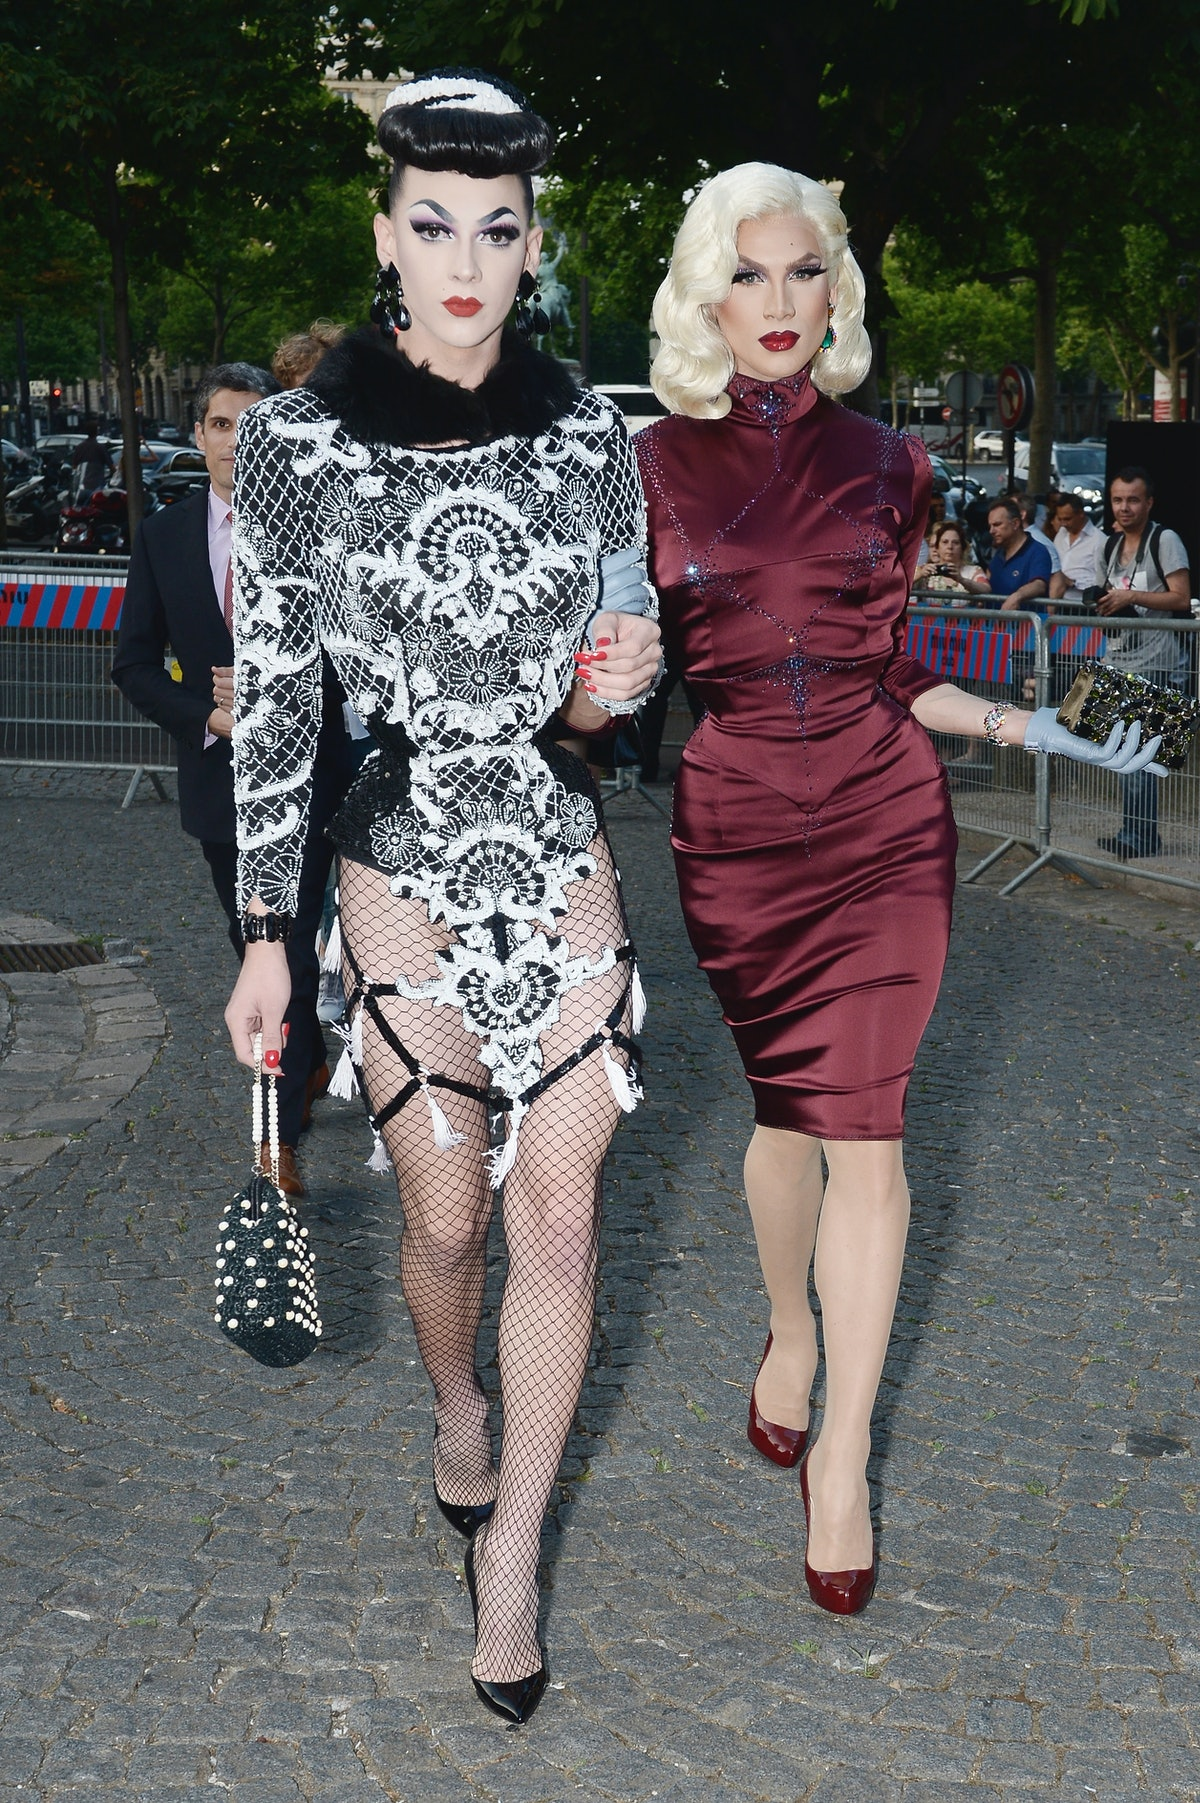 Violet Chachki and Miss Fame.